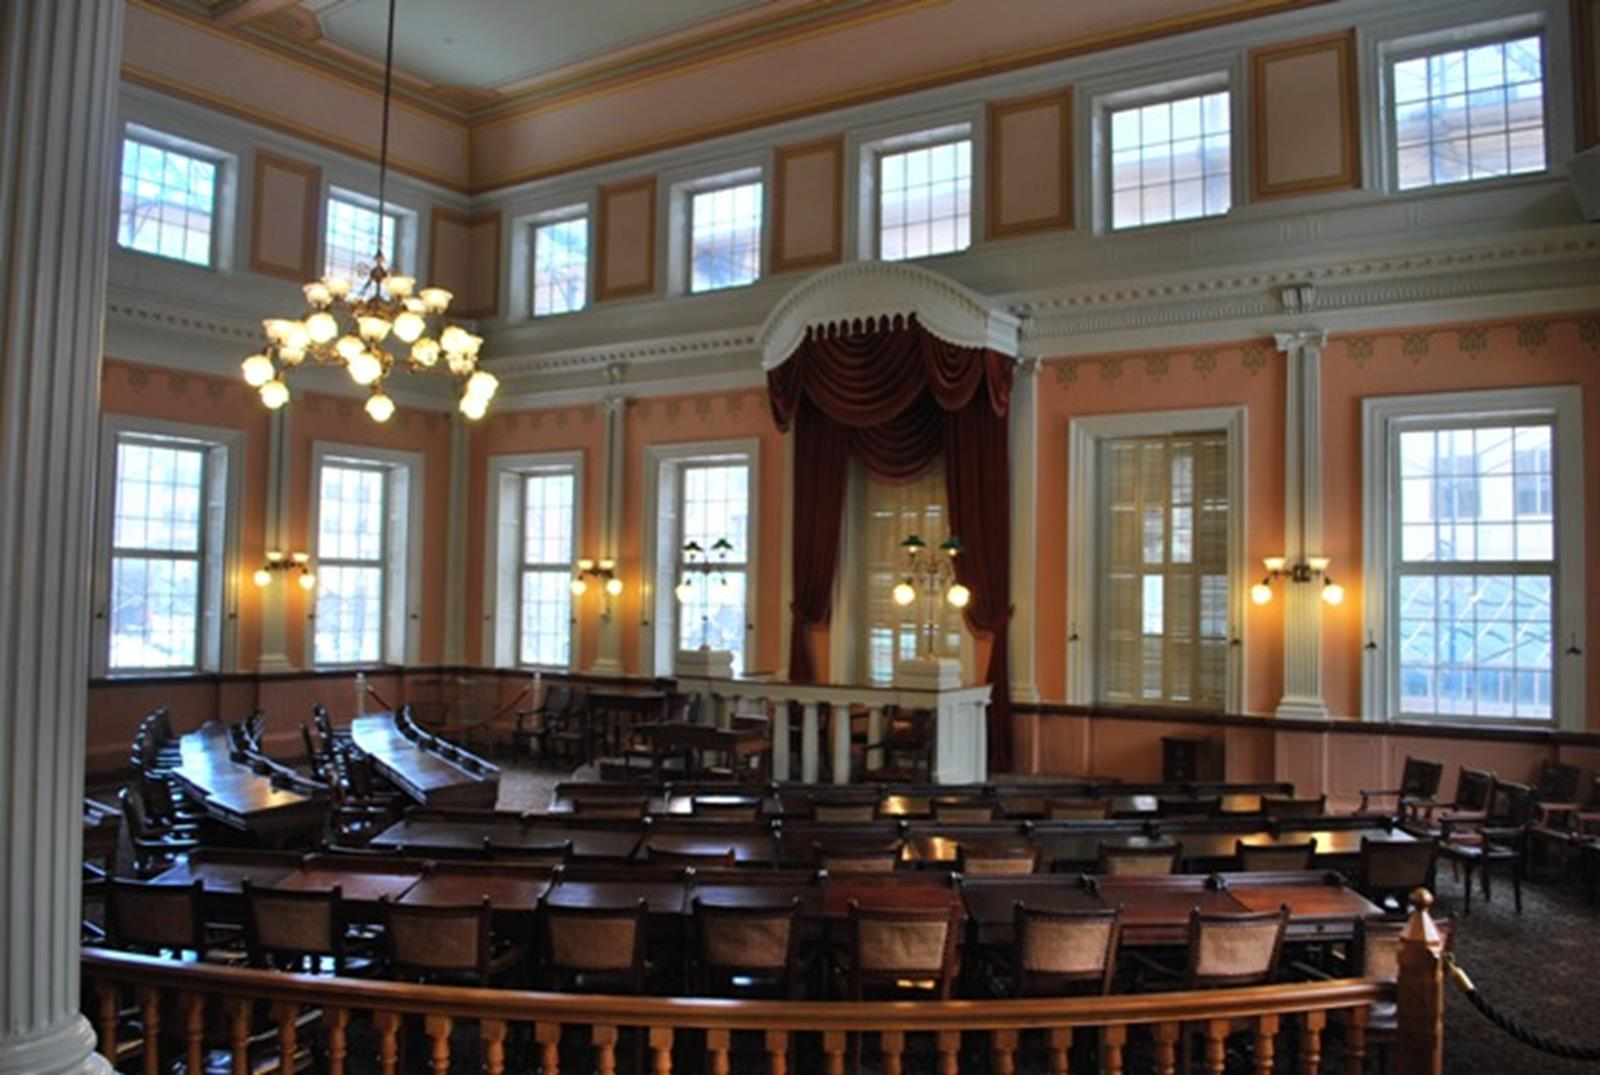 Connecticut's Old State House. Credit: Connecticut Public Affairs Network